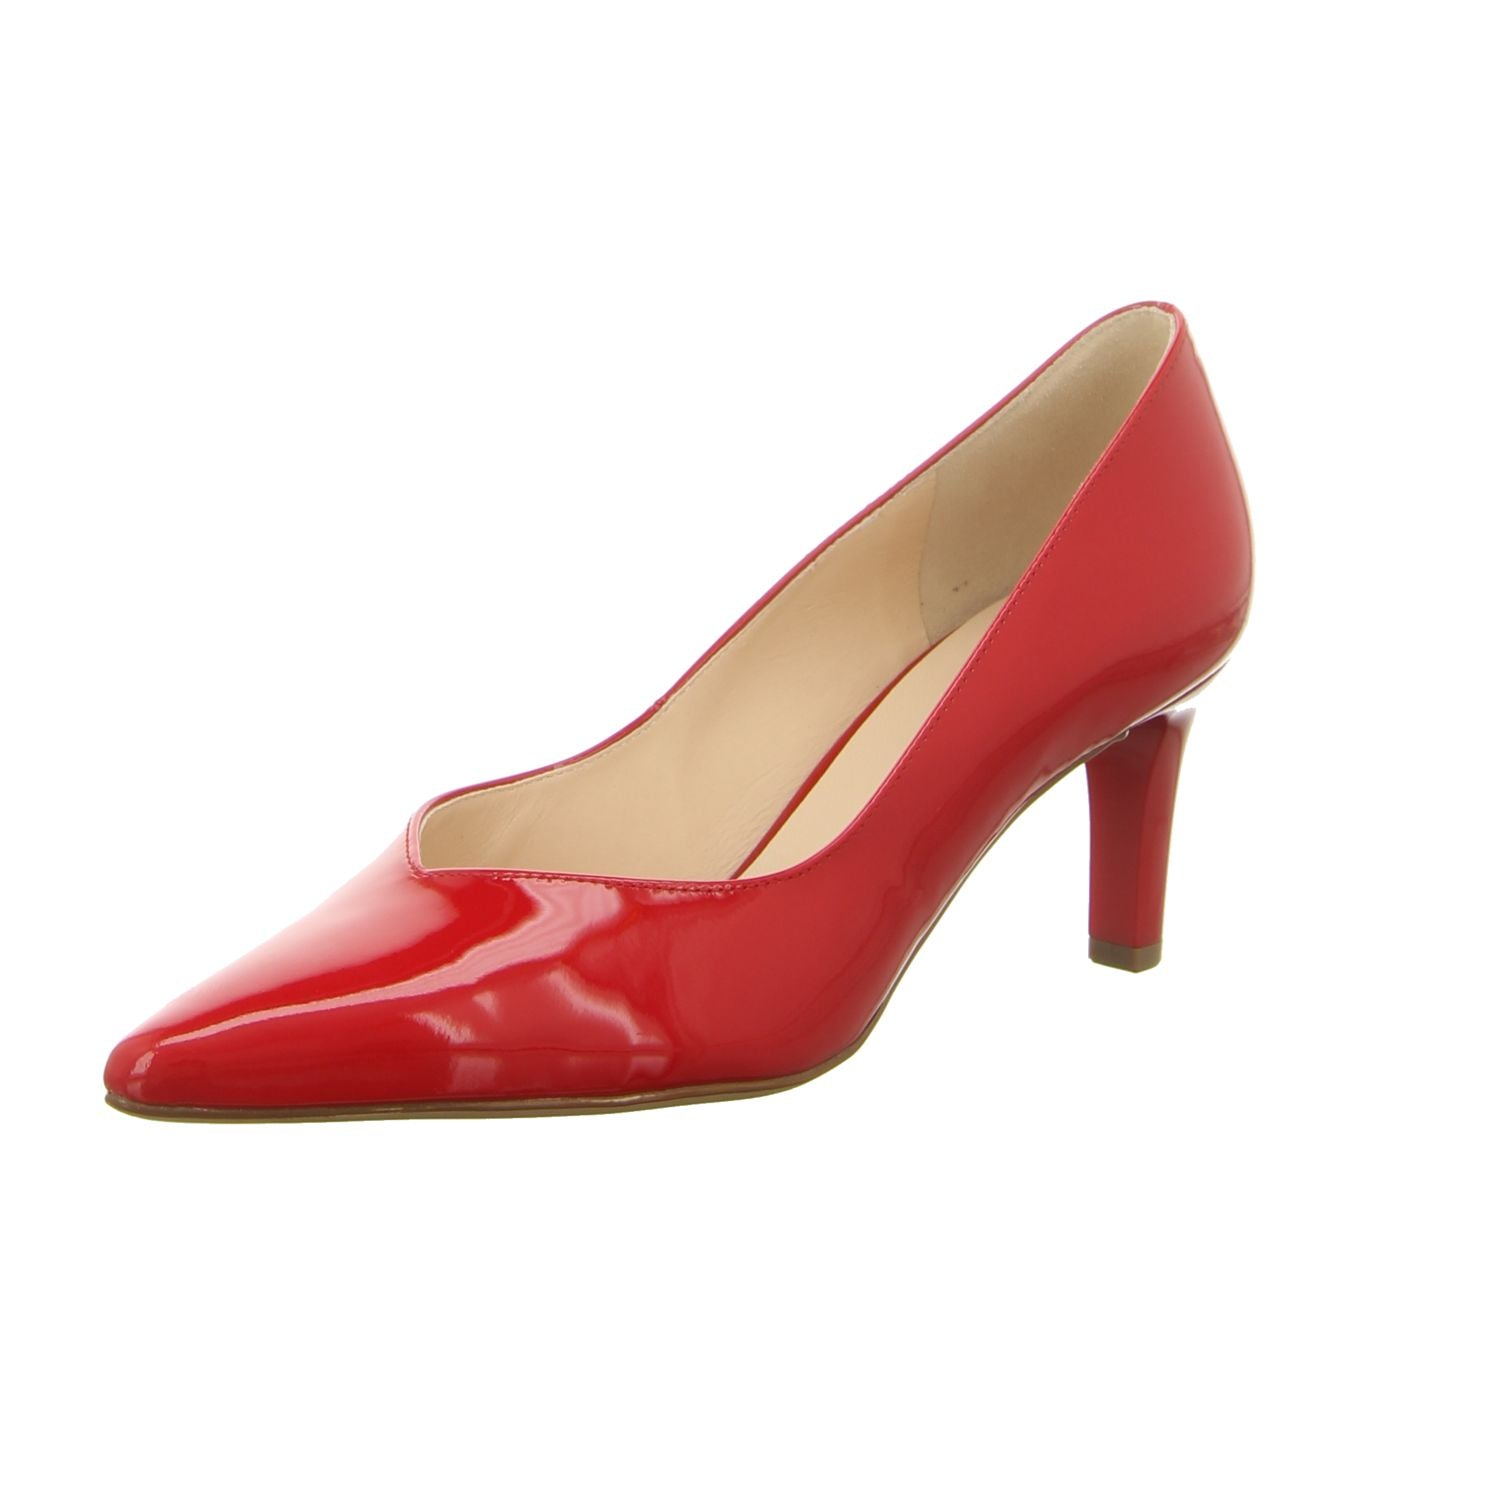 Hogl Red Patent High Heel Shoe